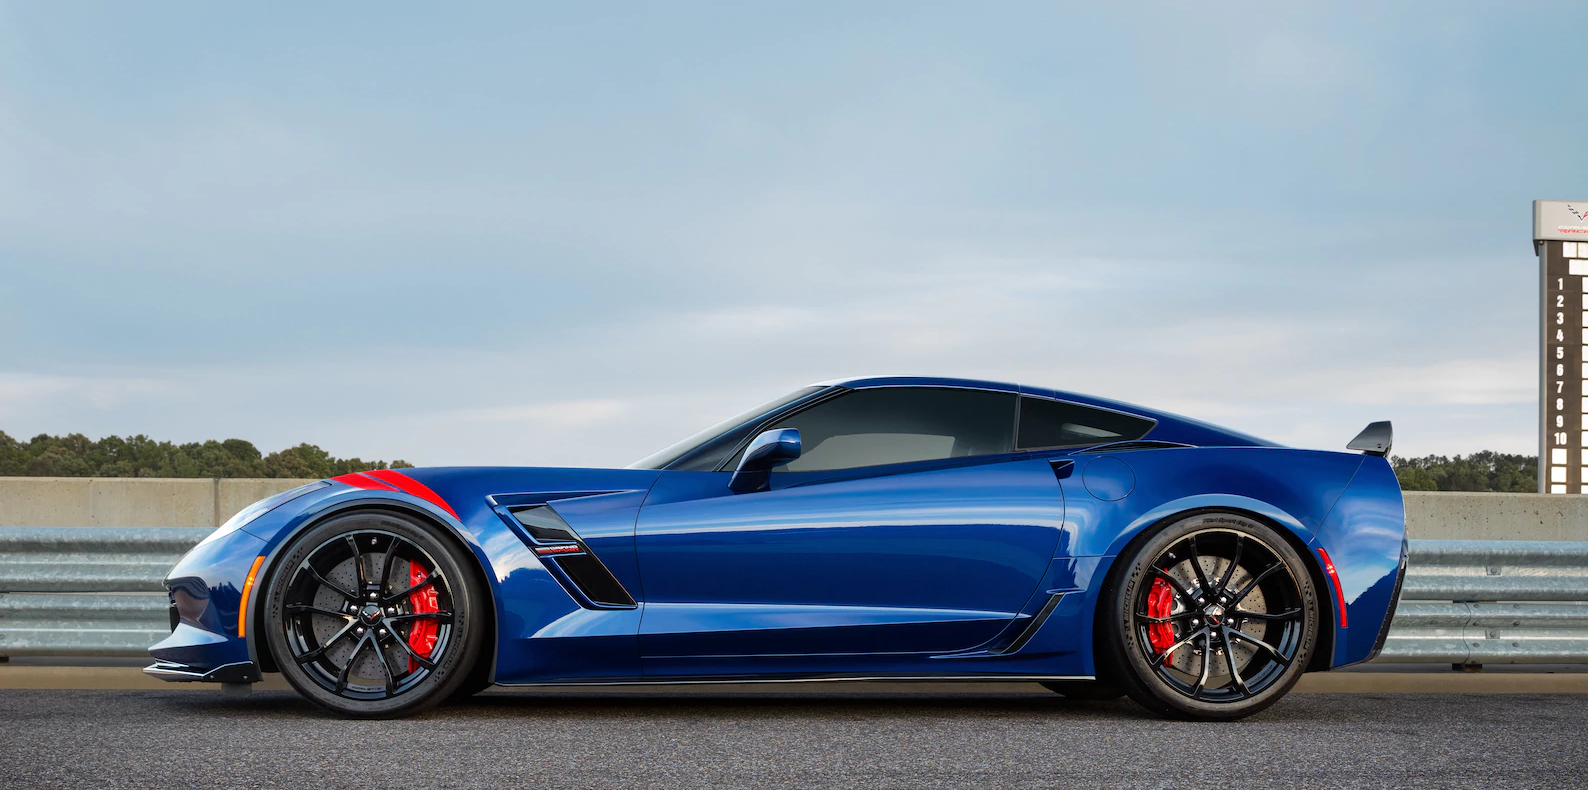 2019-corvette-gs-ext-01-jpg-1613×807-